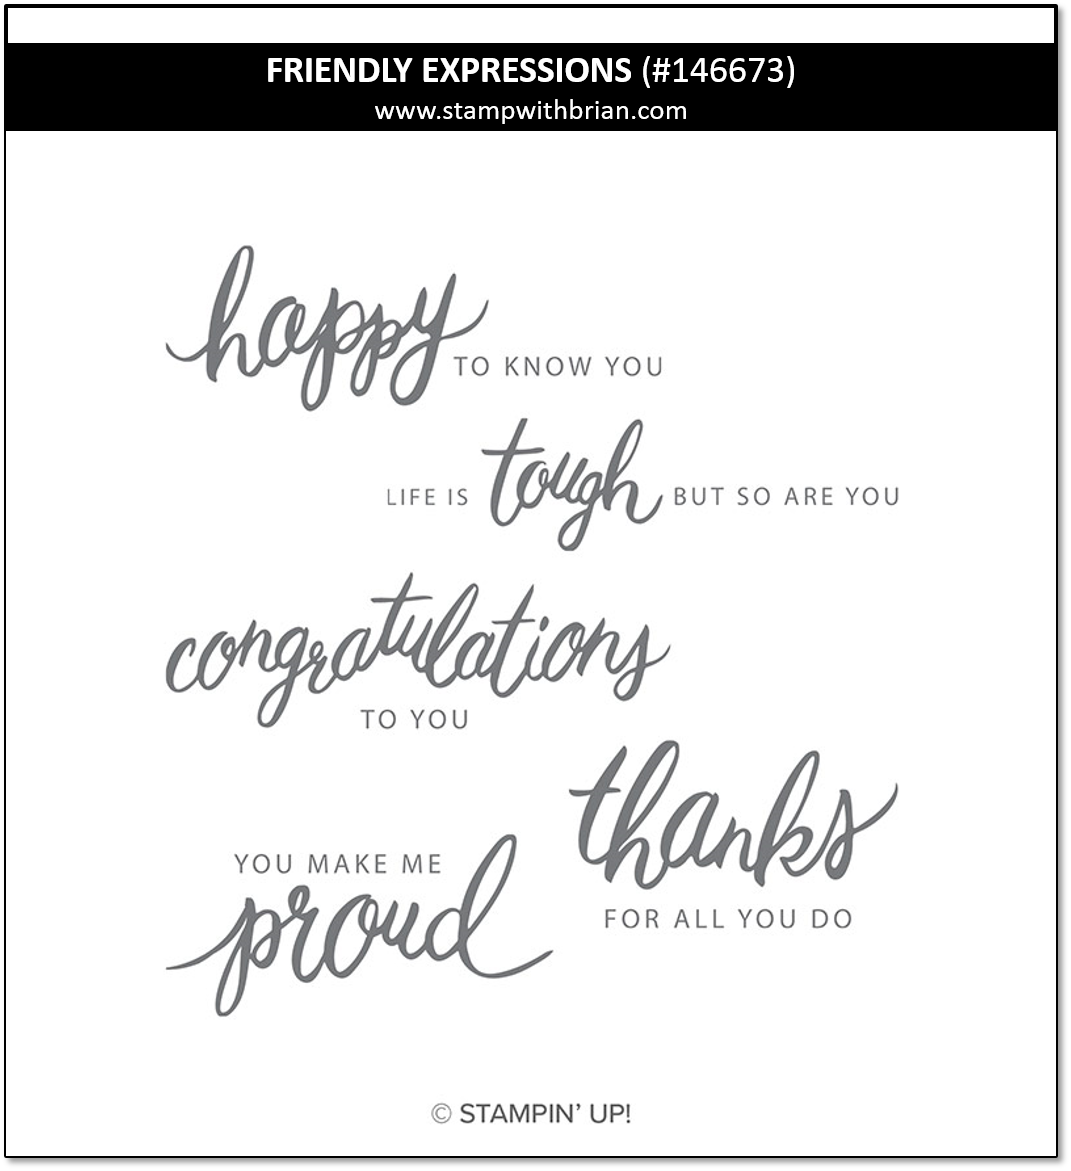 Friendly Expressions, Stampin' Up!, 146673